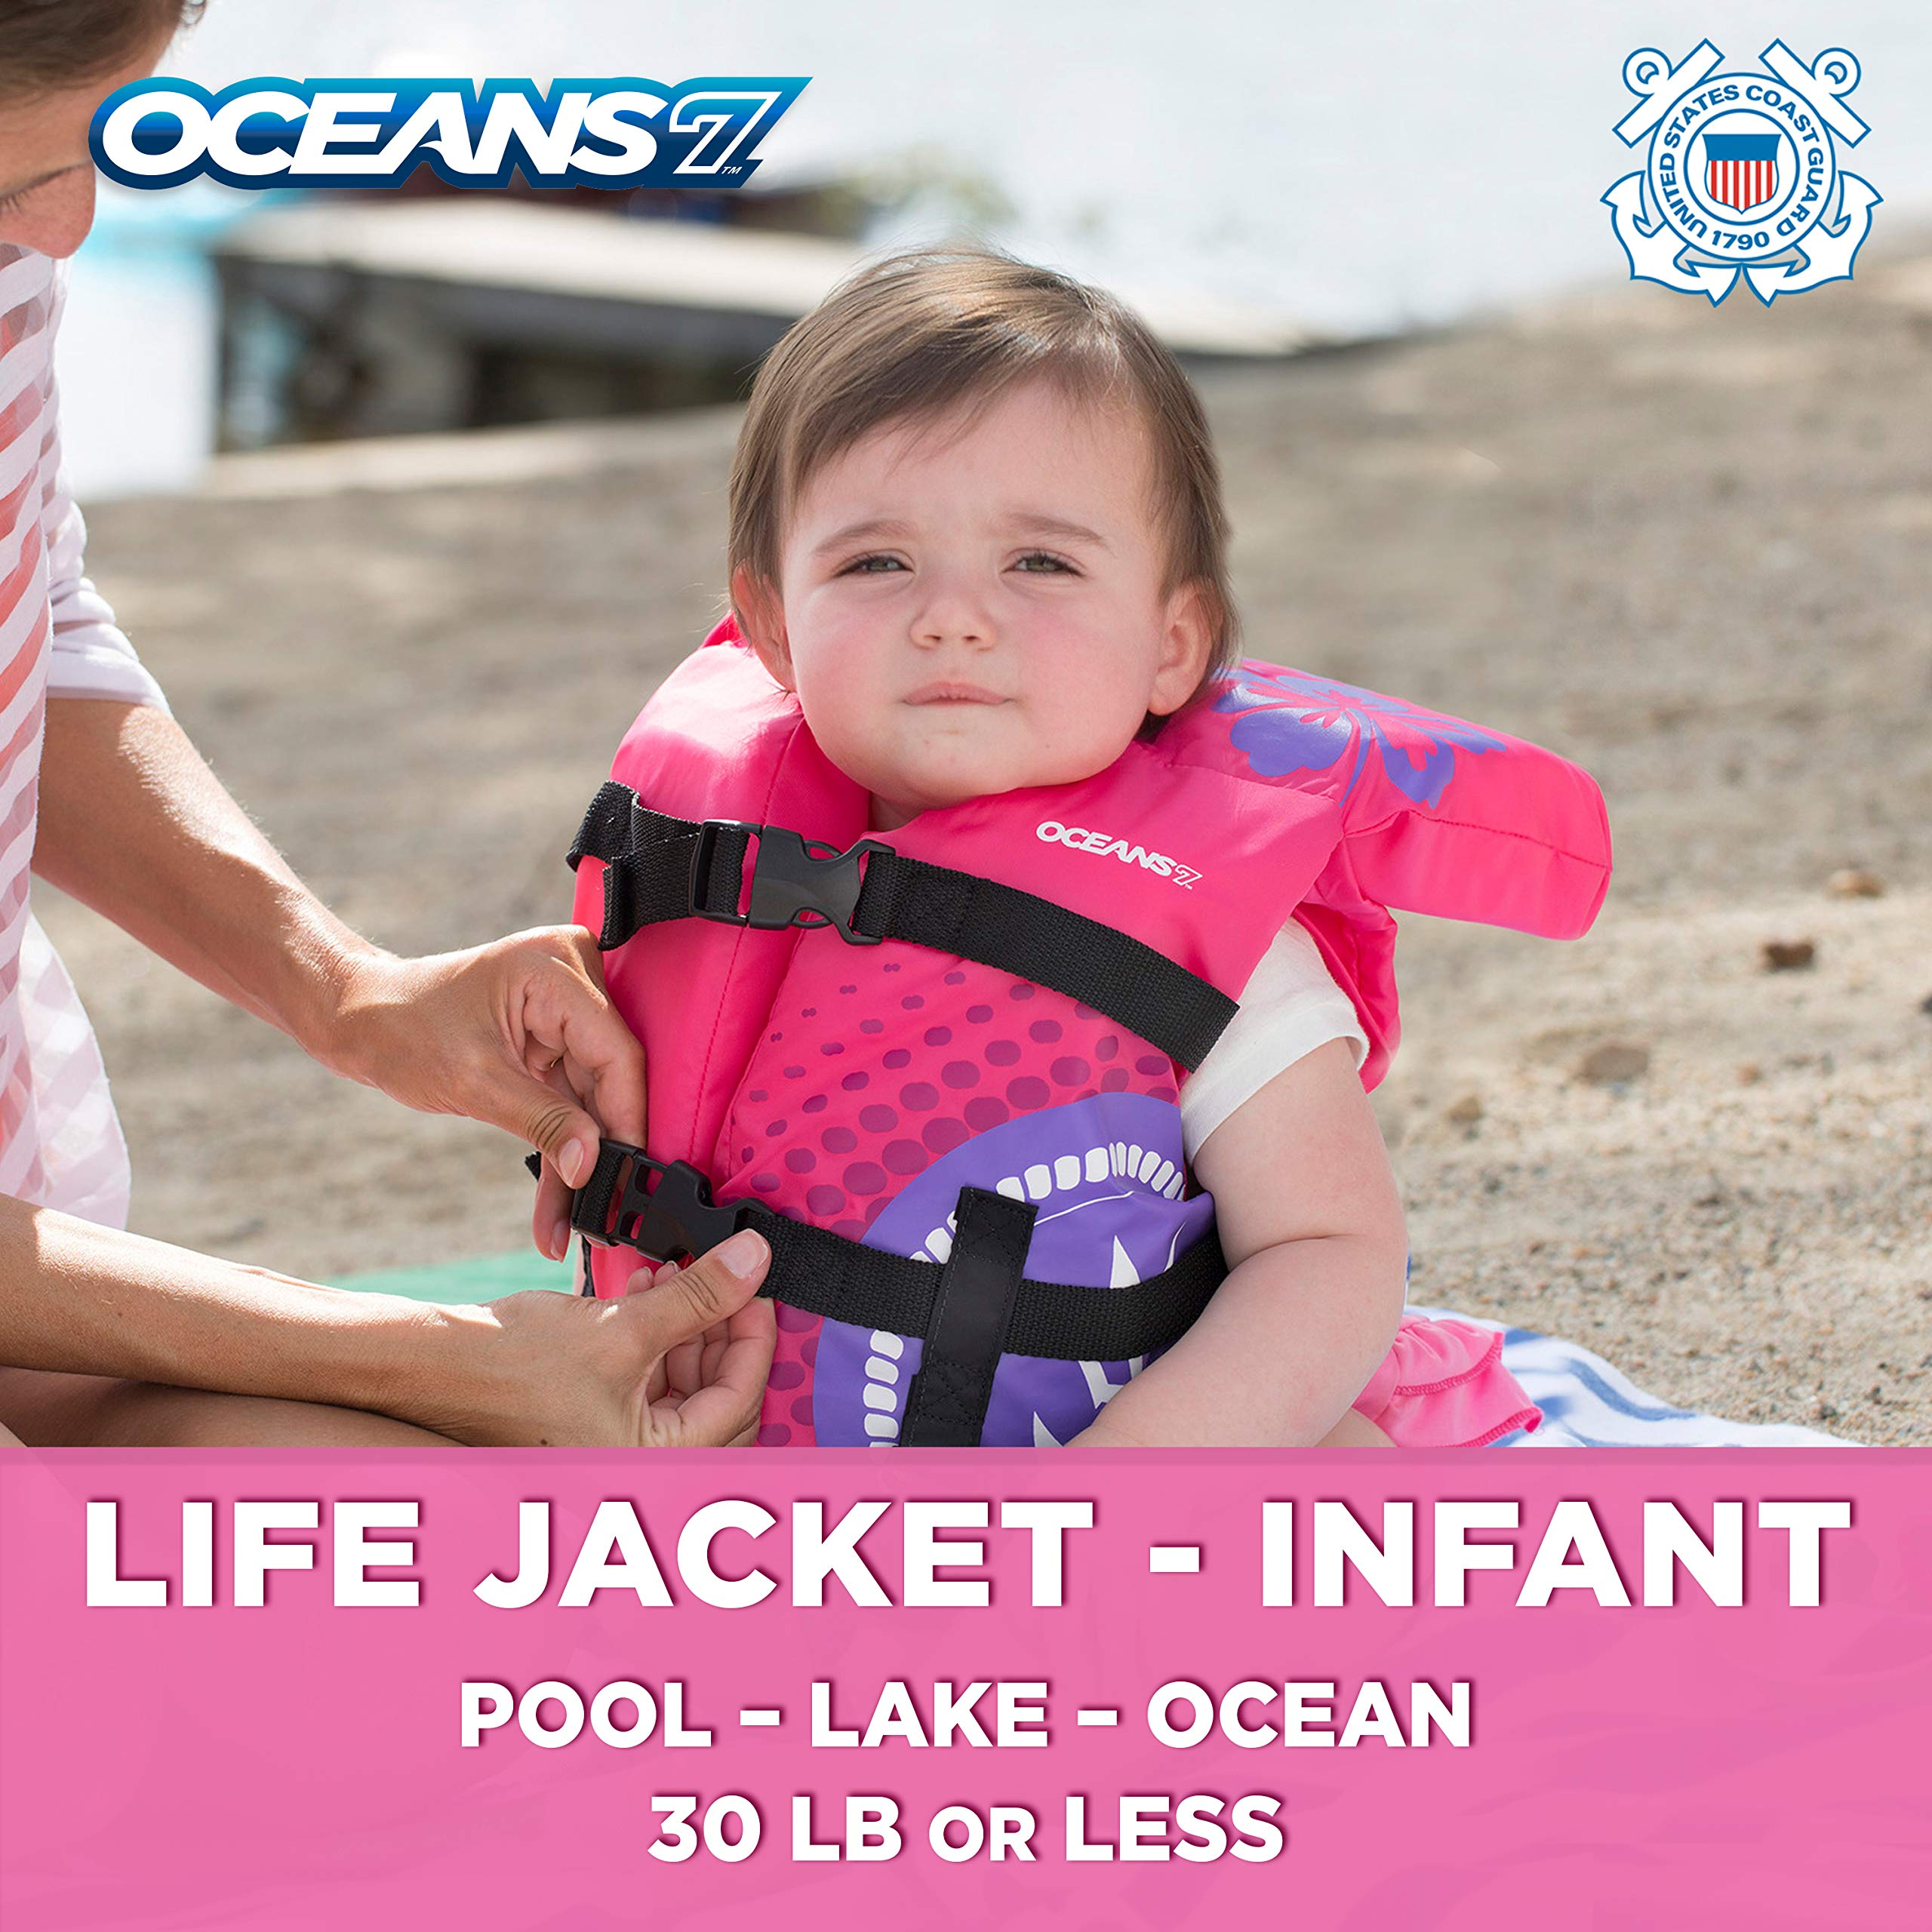 Oceans7 Us Coast Guard Approved, Infant Life Jacket, Type II Vest, PFD, Personal Flotation Device, Flex-Form Chest, Pink/Berry by Oceans 7